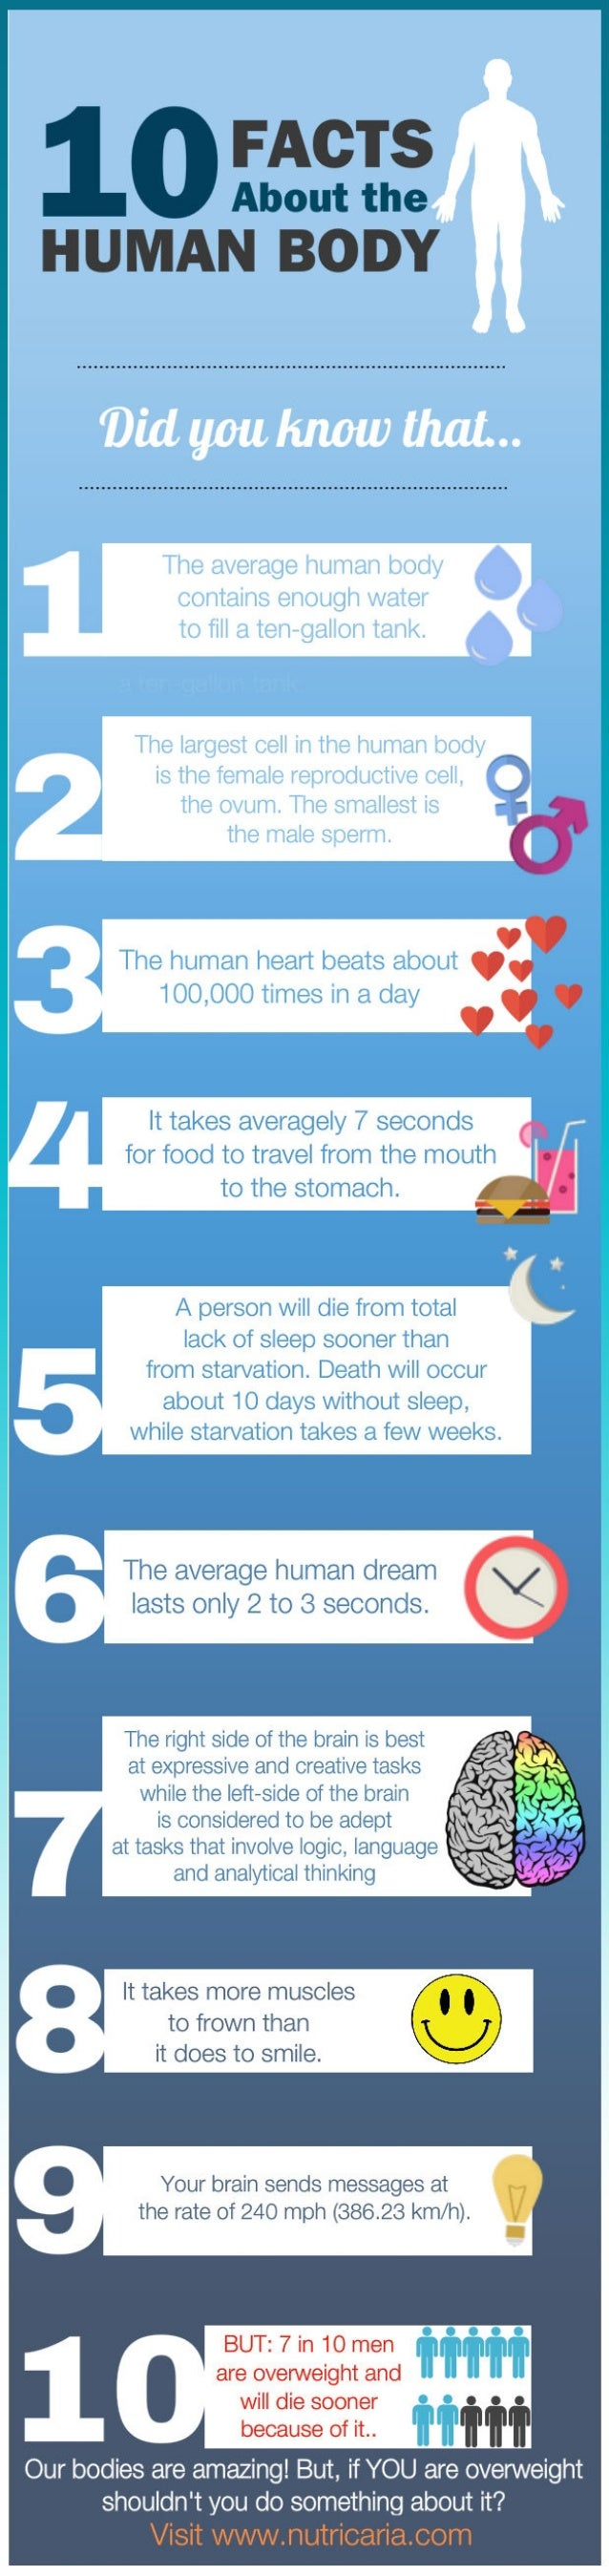 10 Facts About The Human Body